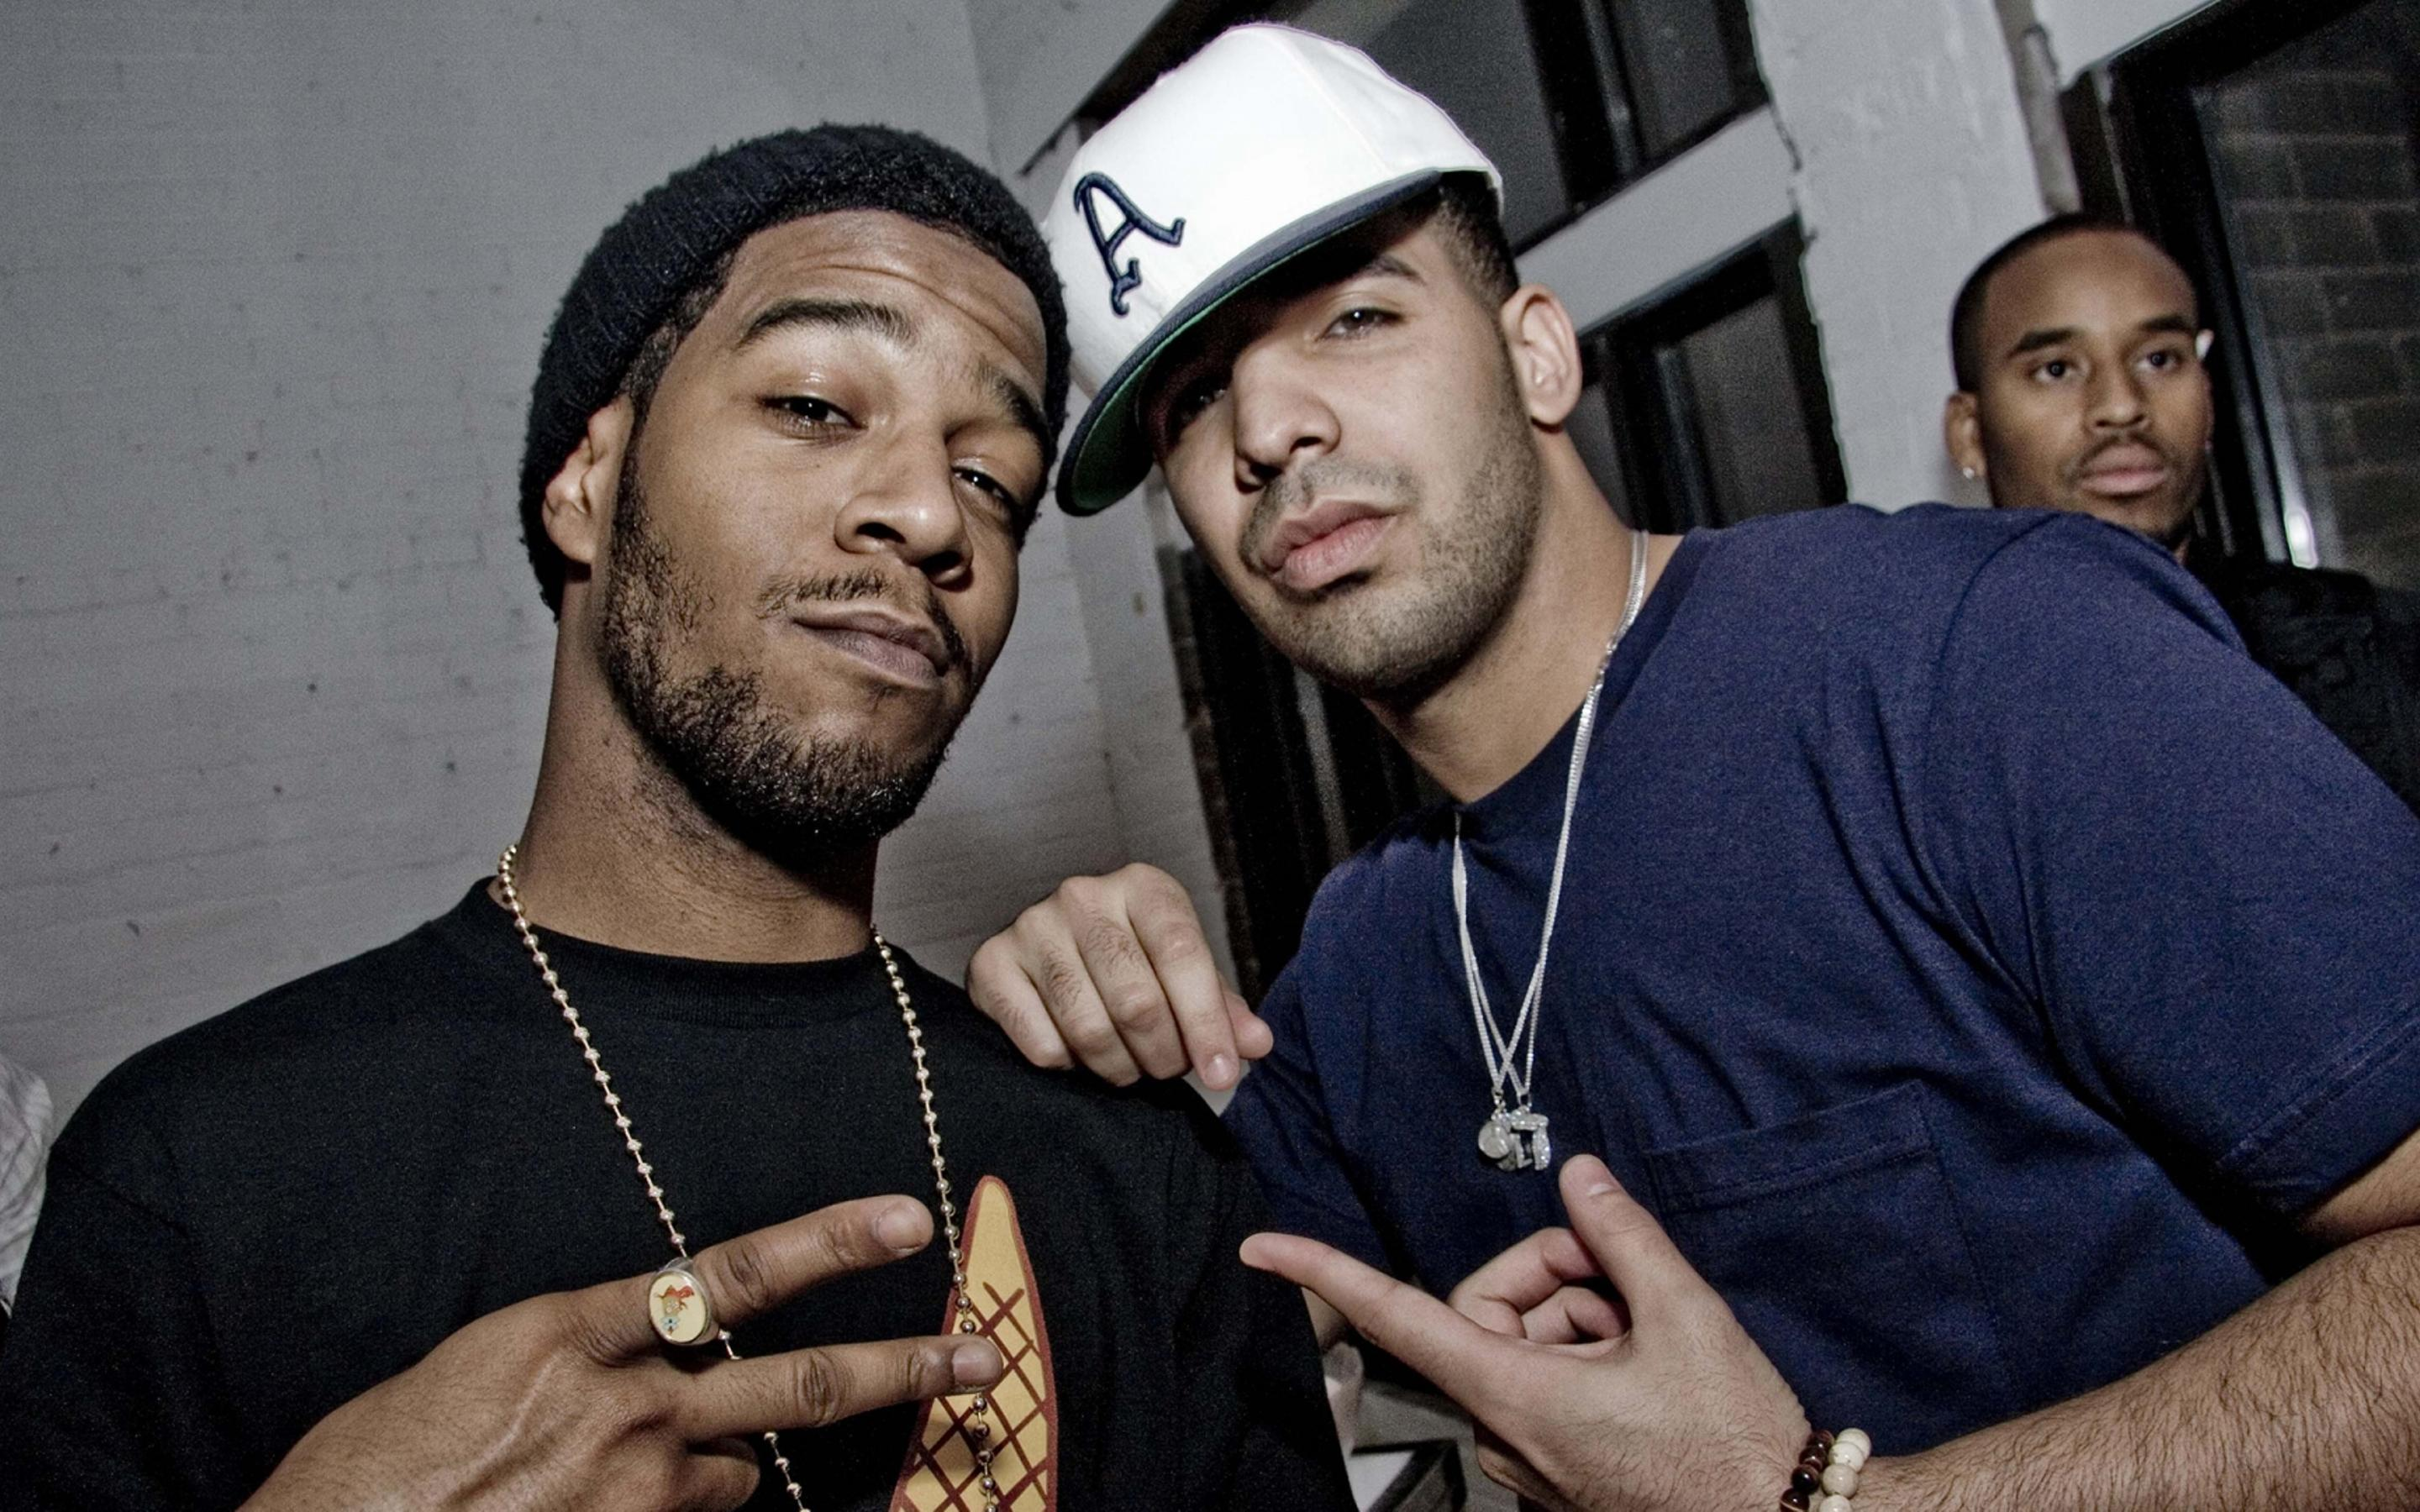 Most Inspiring Wallpaper Macbook Drake - the-better-rapper-kid-cudi-and-drake-2880x1800  Perfect Image Reference_524935.jpg